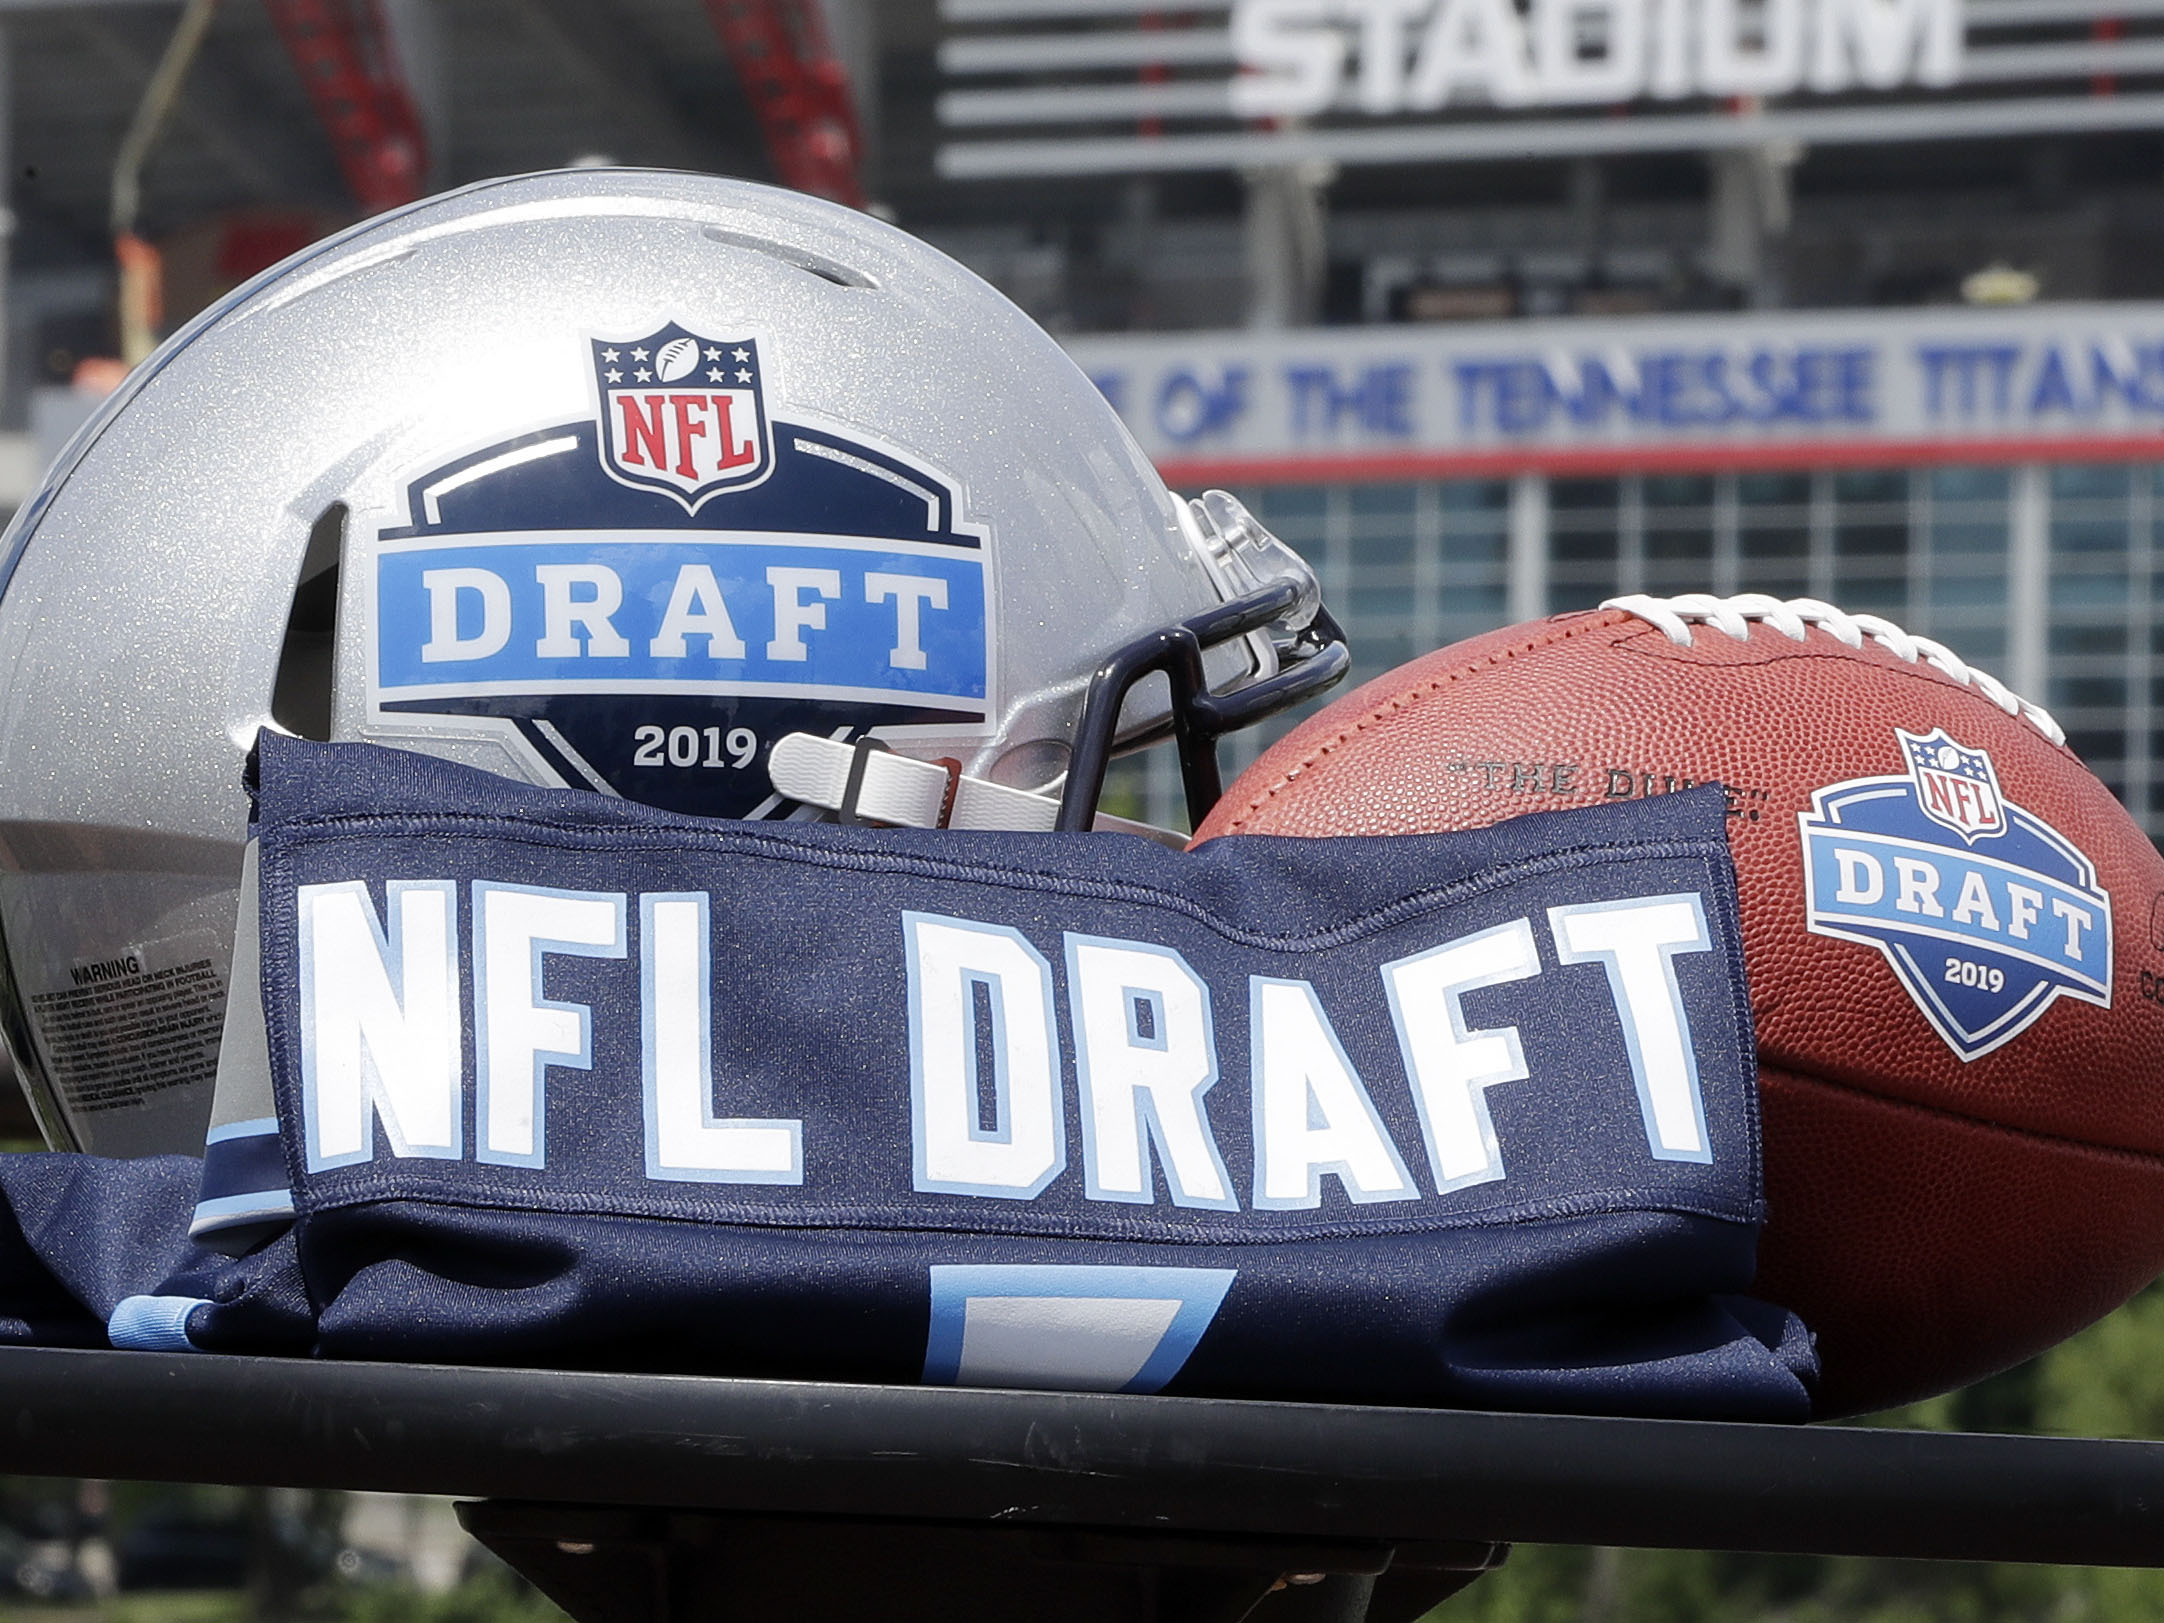 NFL draft details: 2019 mock drafts, dates, what to know